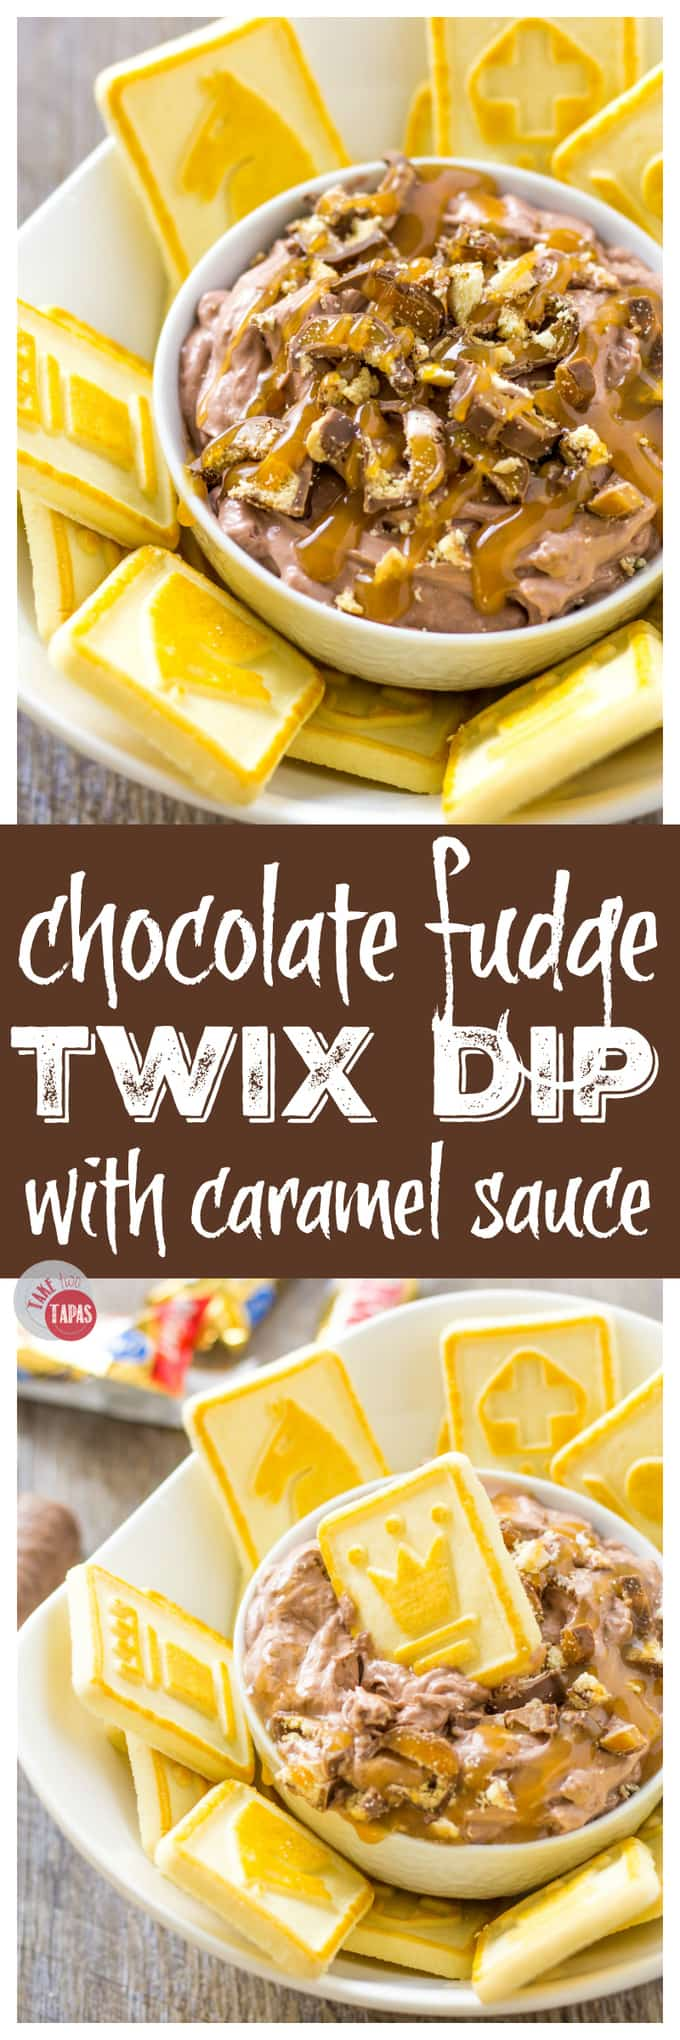 Pin this Chocolate Fudge Caramel Twix Dip